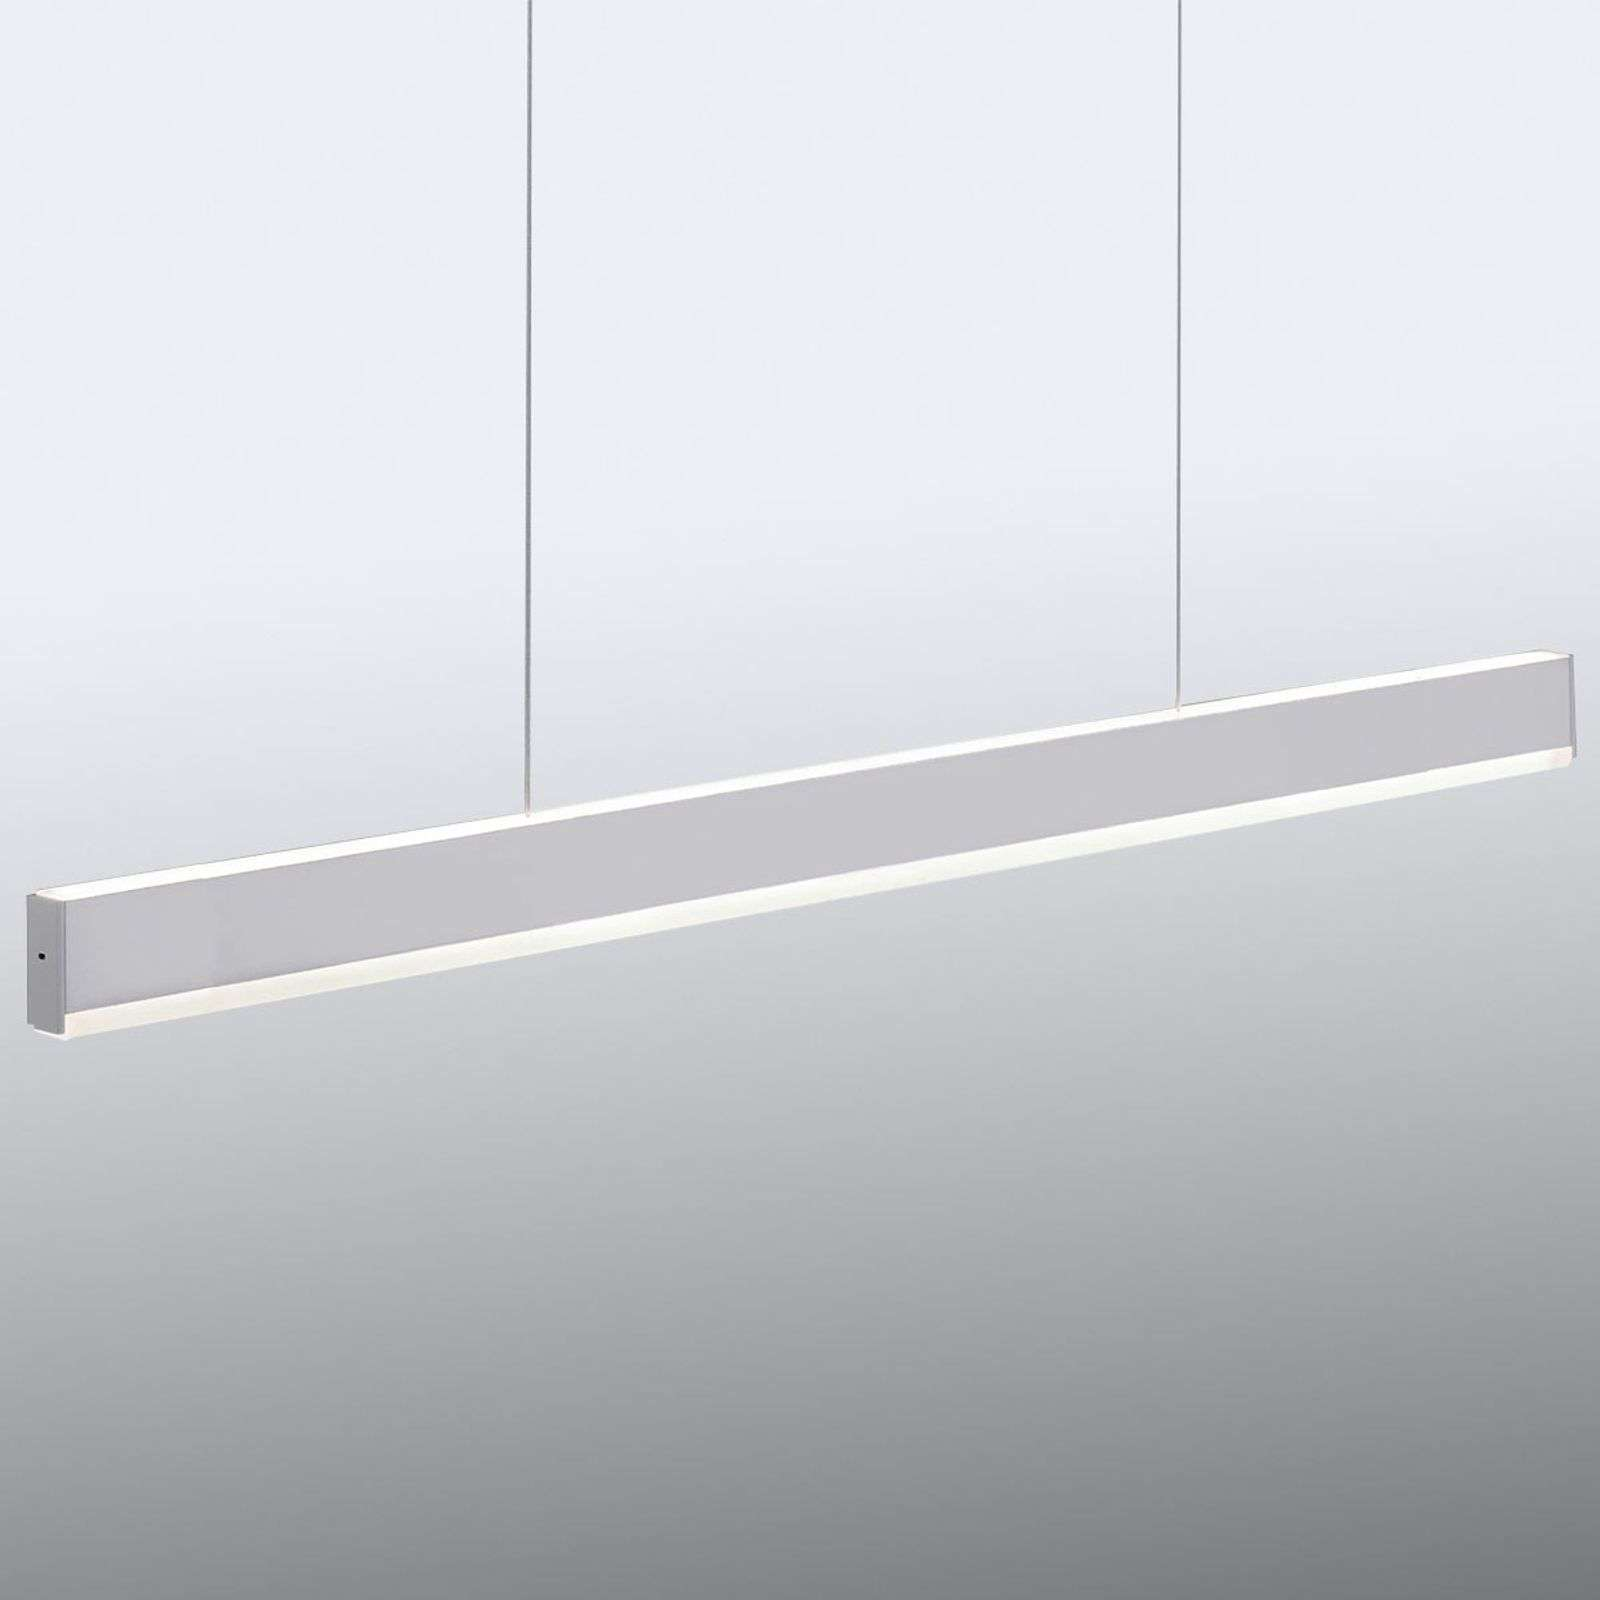 Suspension LED dimmable Arina - longueur 140 cm